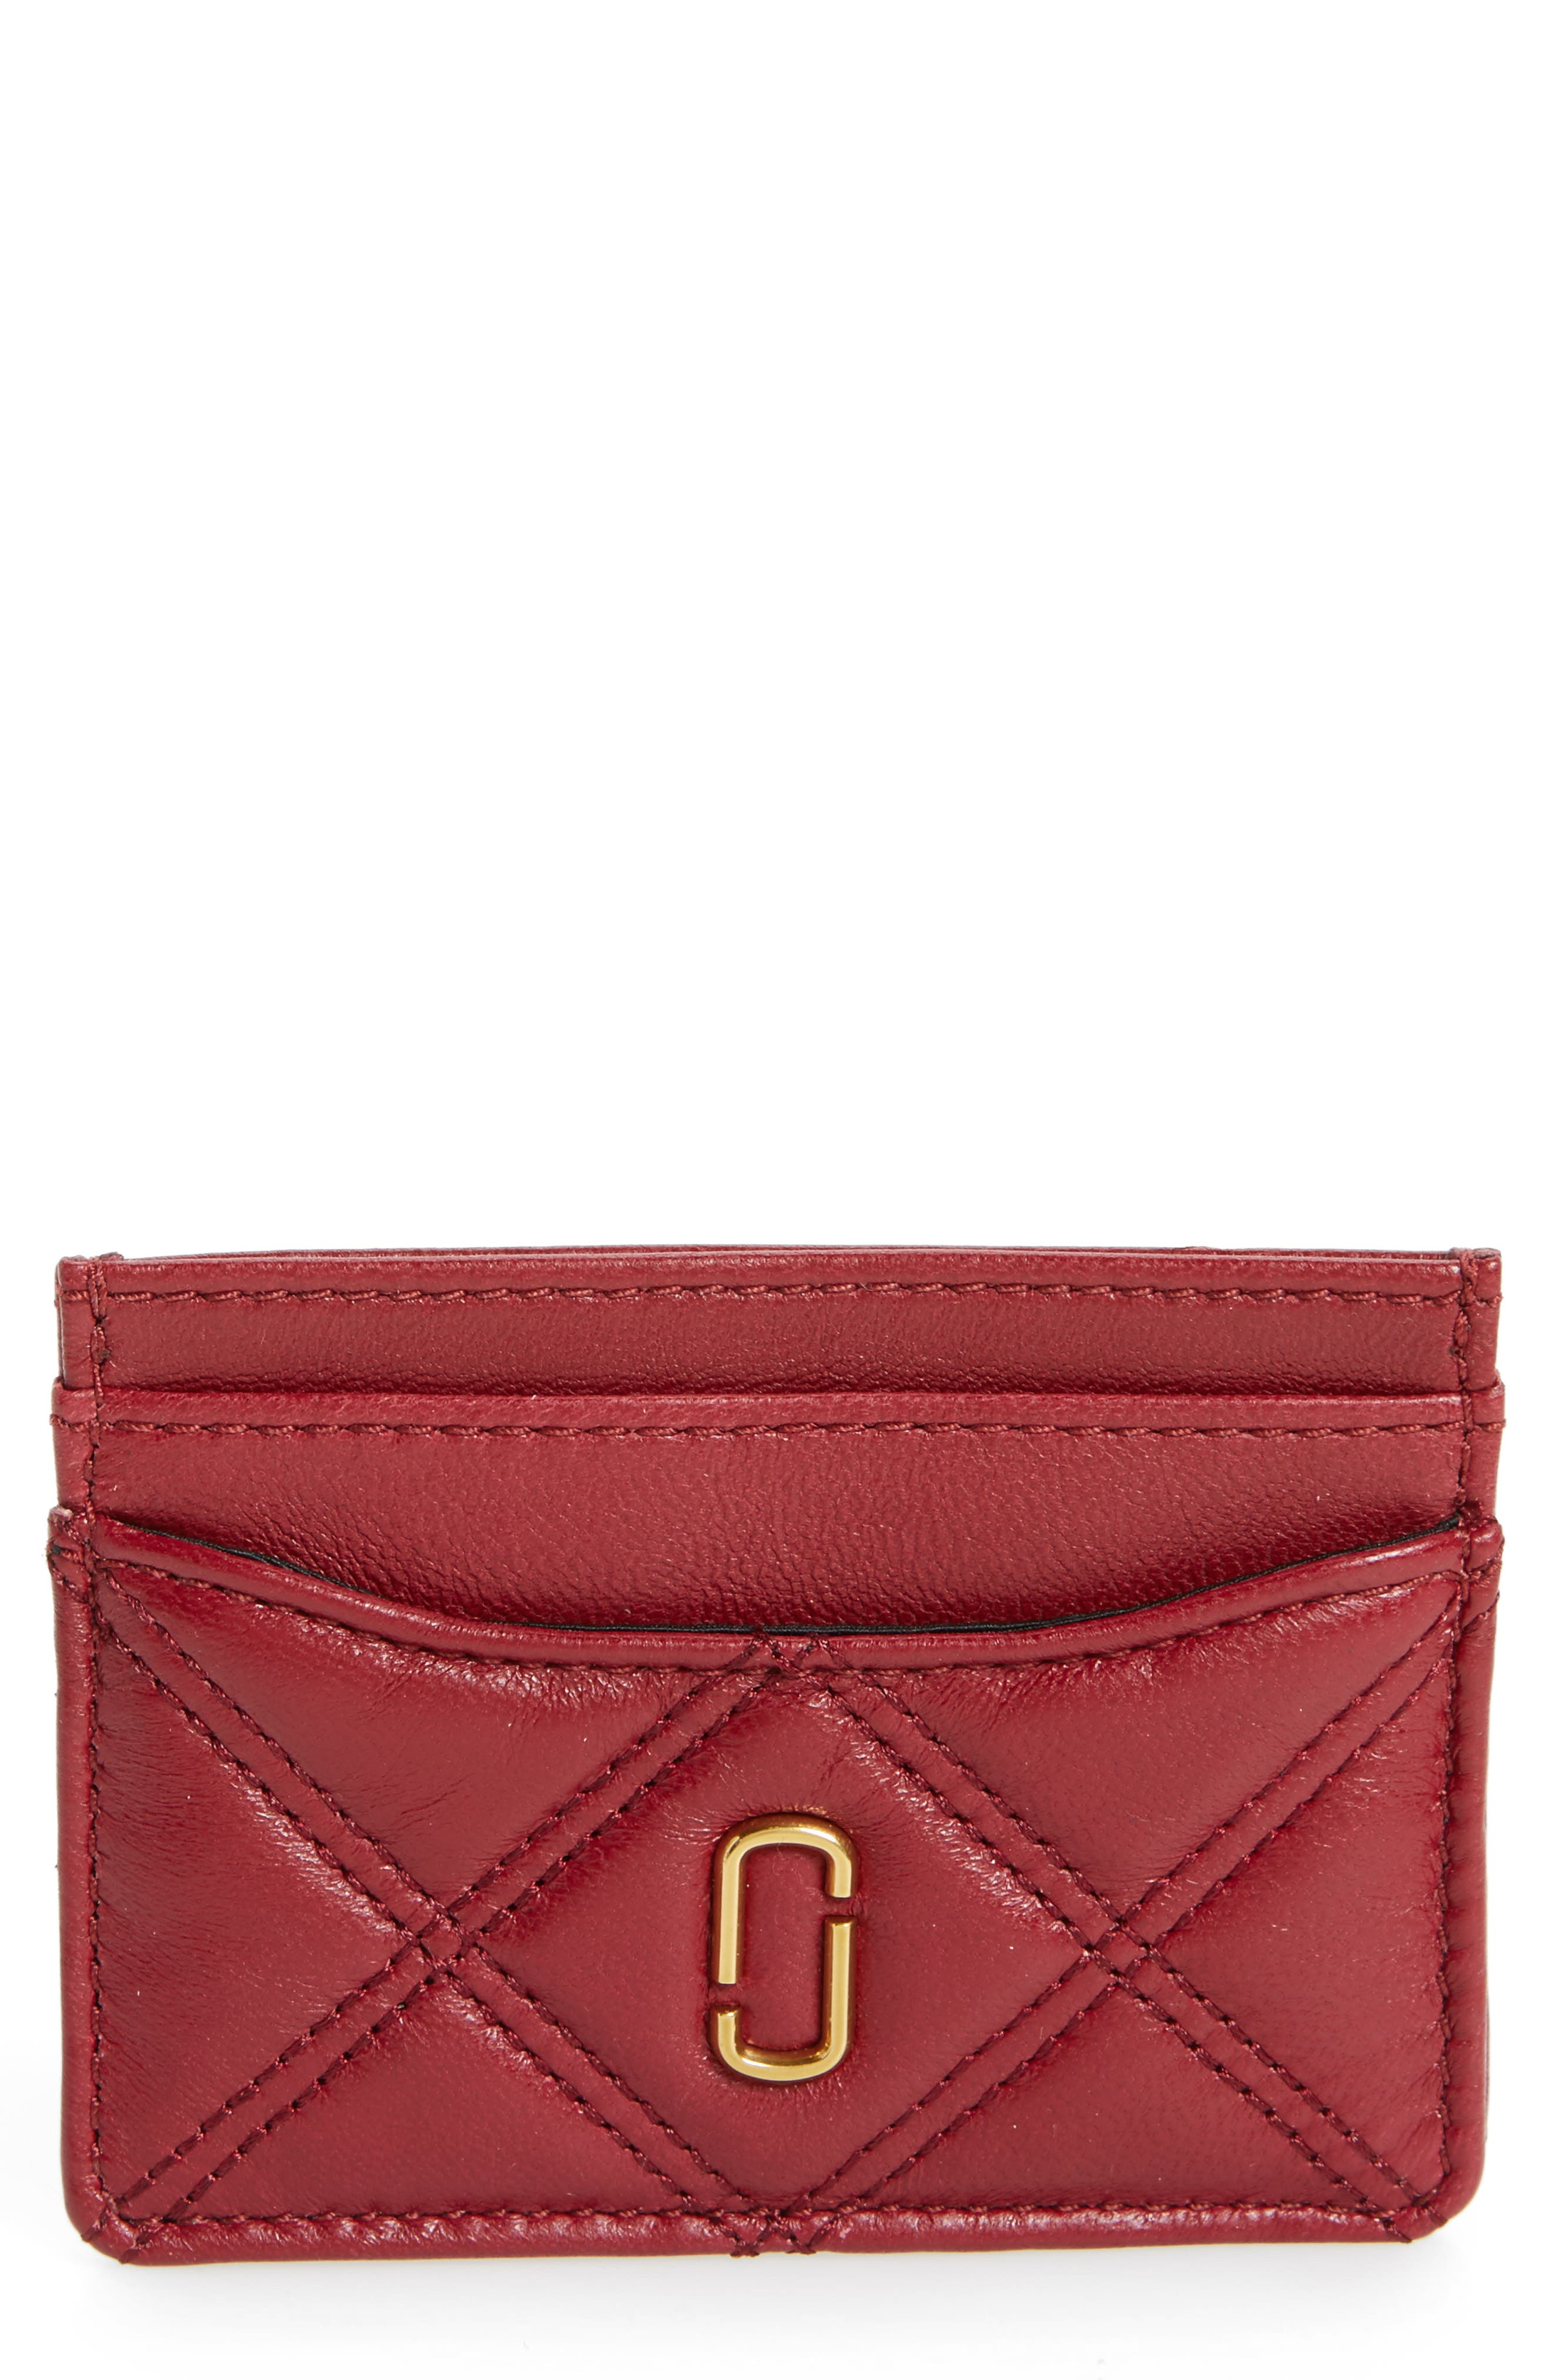 Alternate Image 1 Selected - MARC JACOBS Quilted Leather Card Case